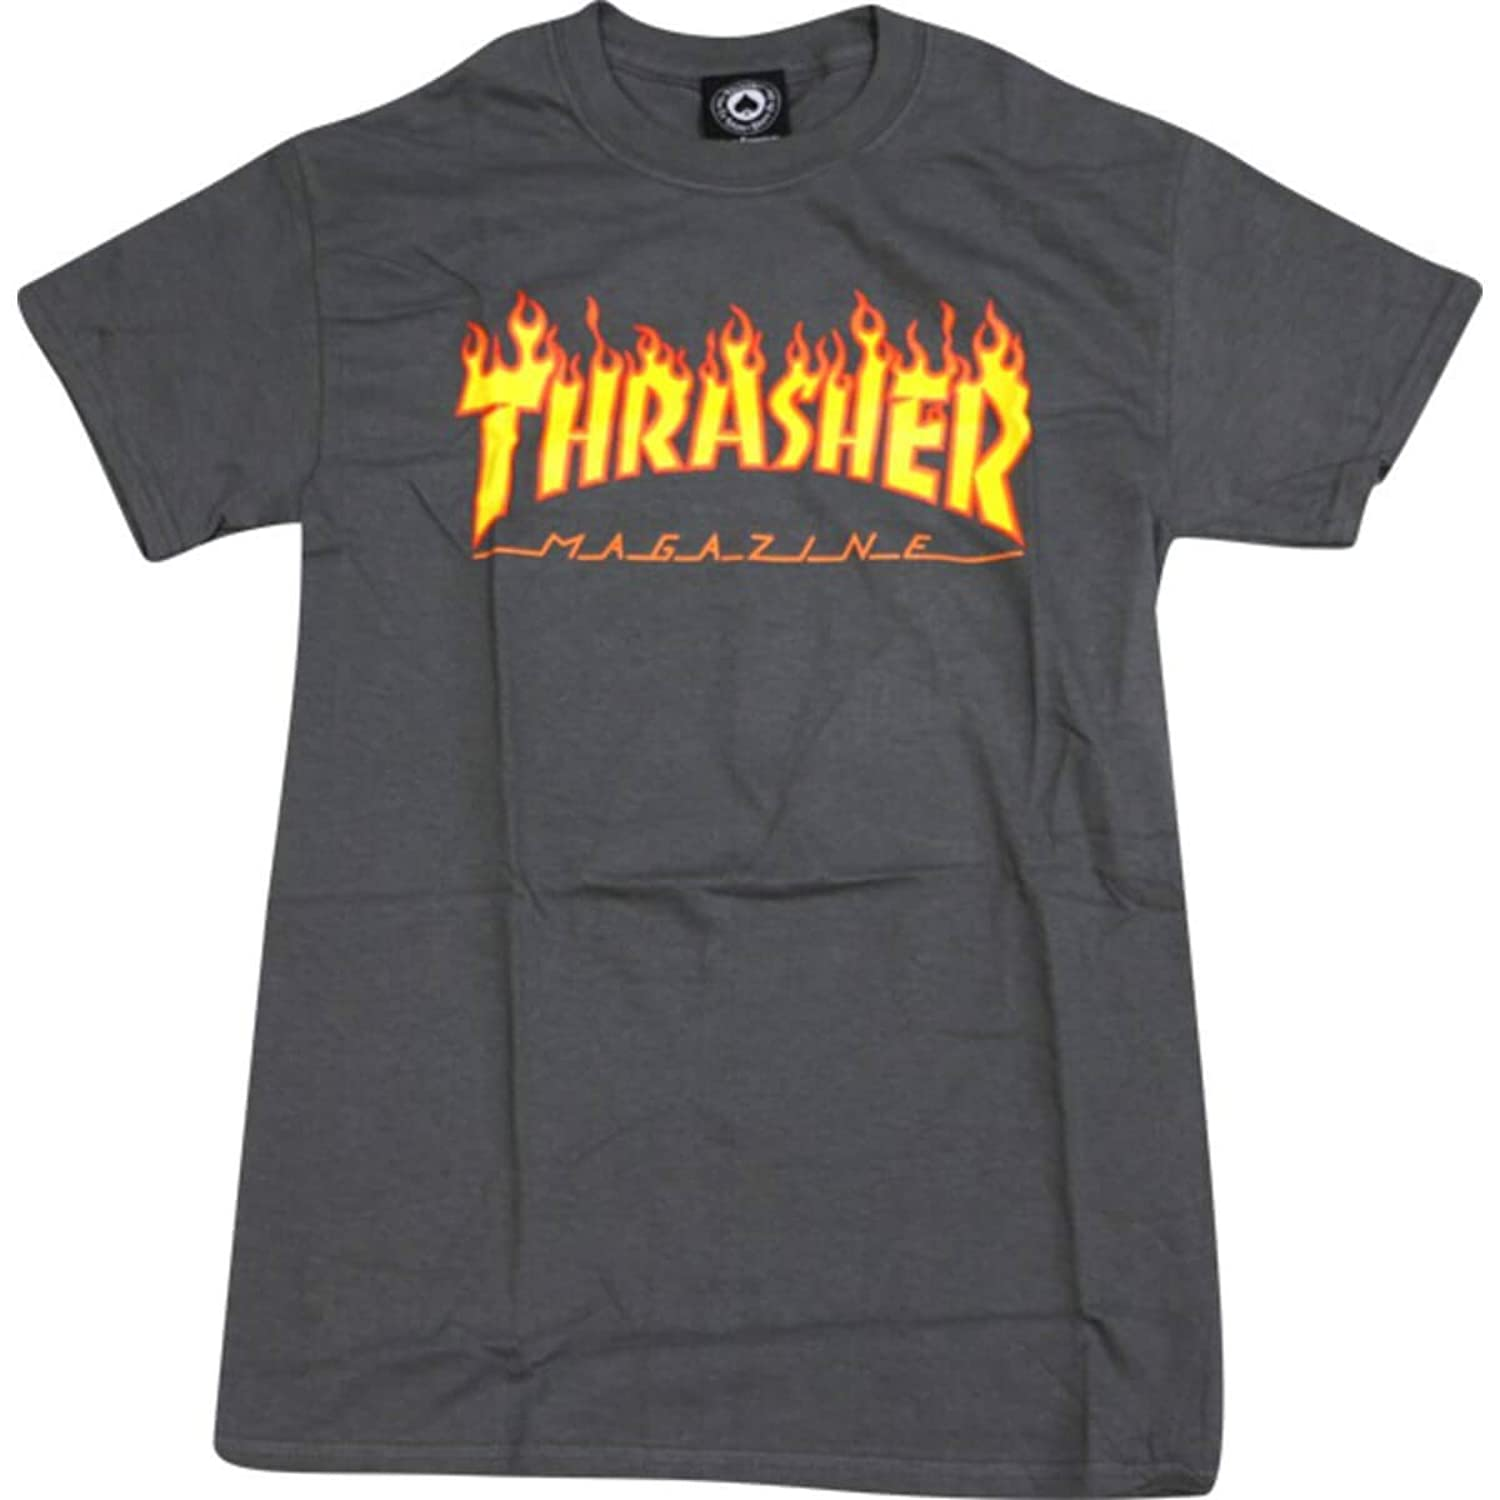 Thrasher Magazine FlameグレーS Tシャツ